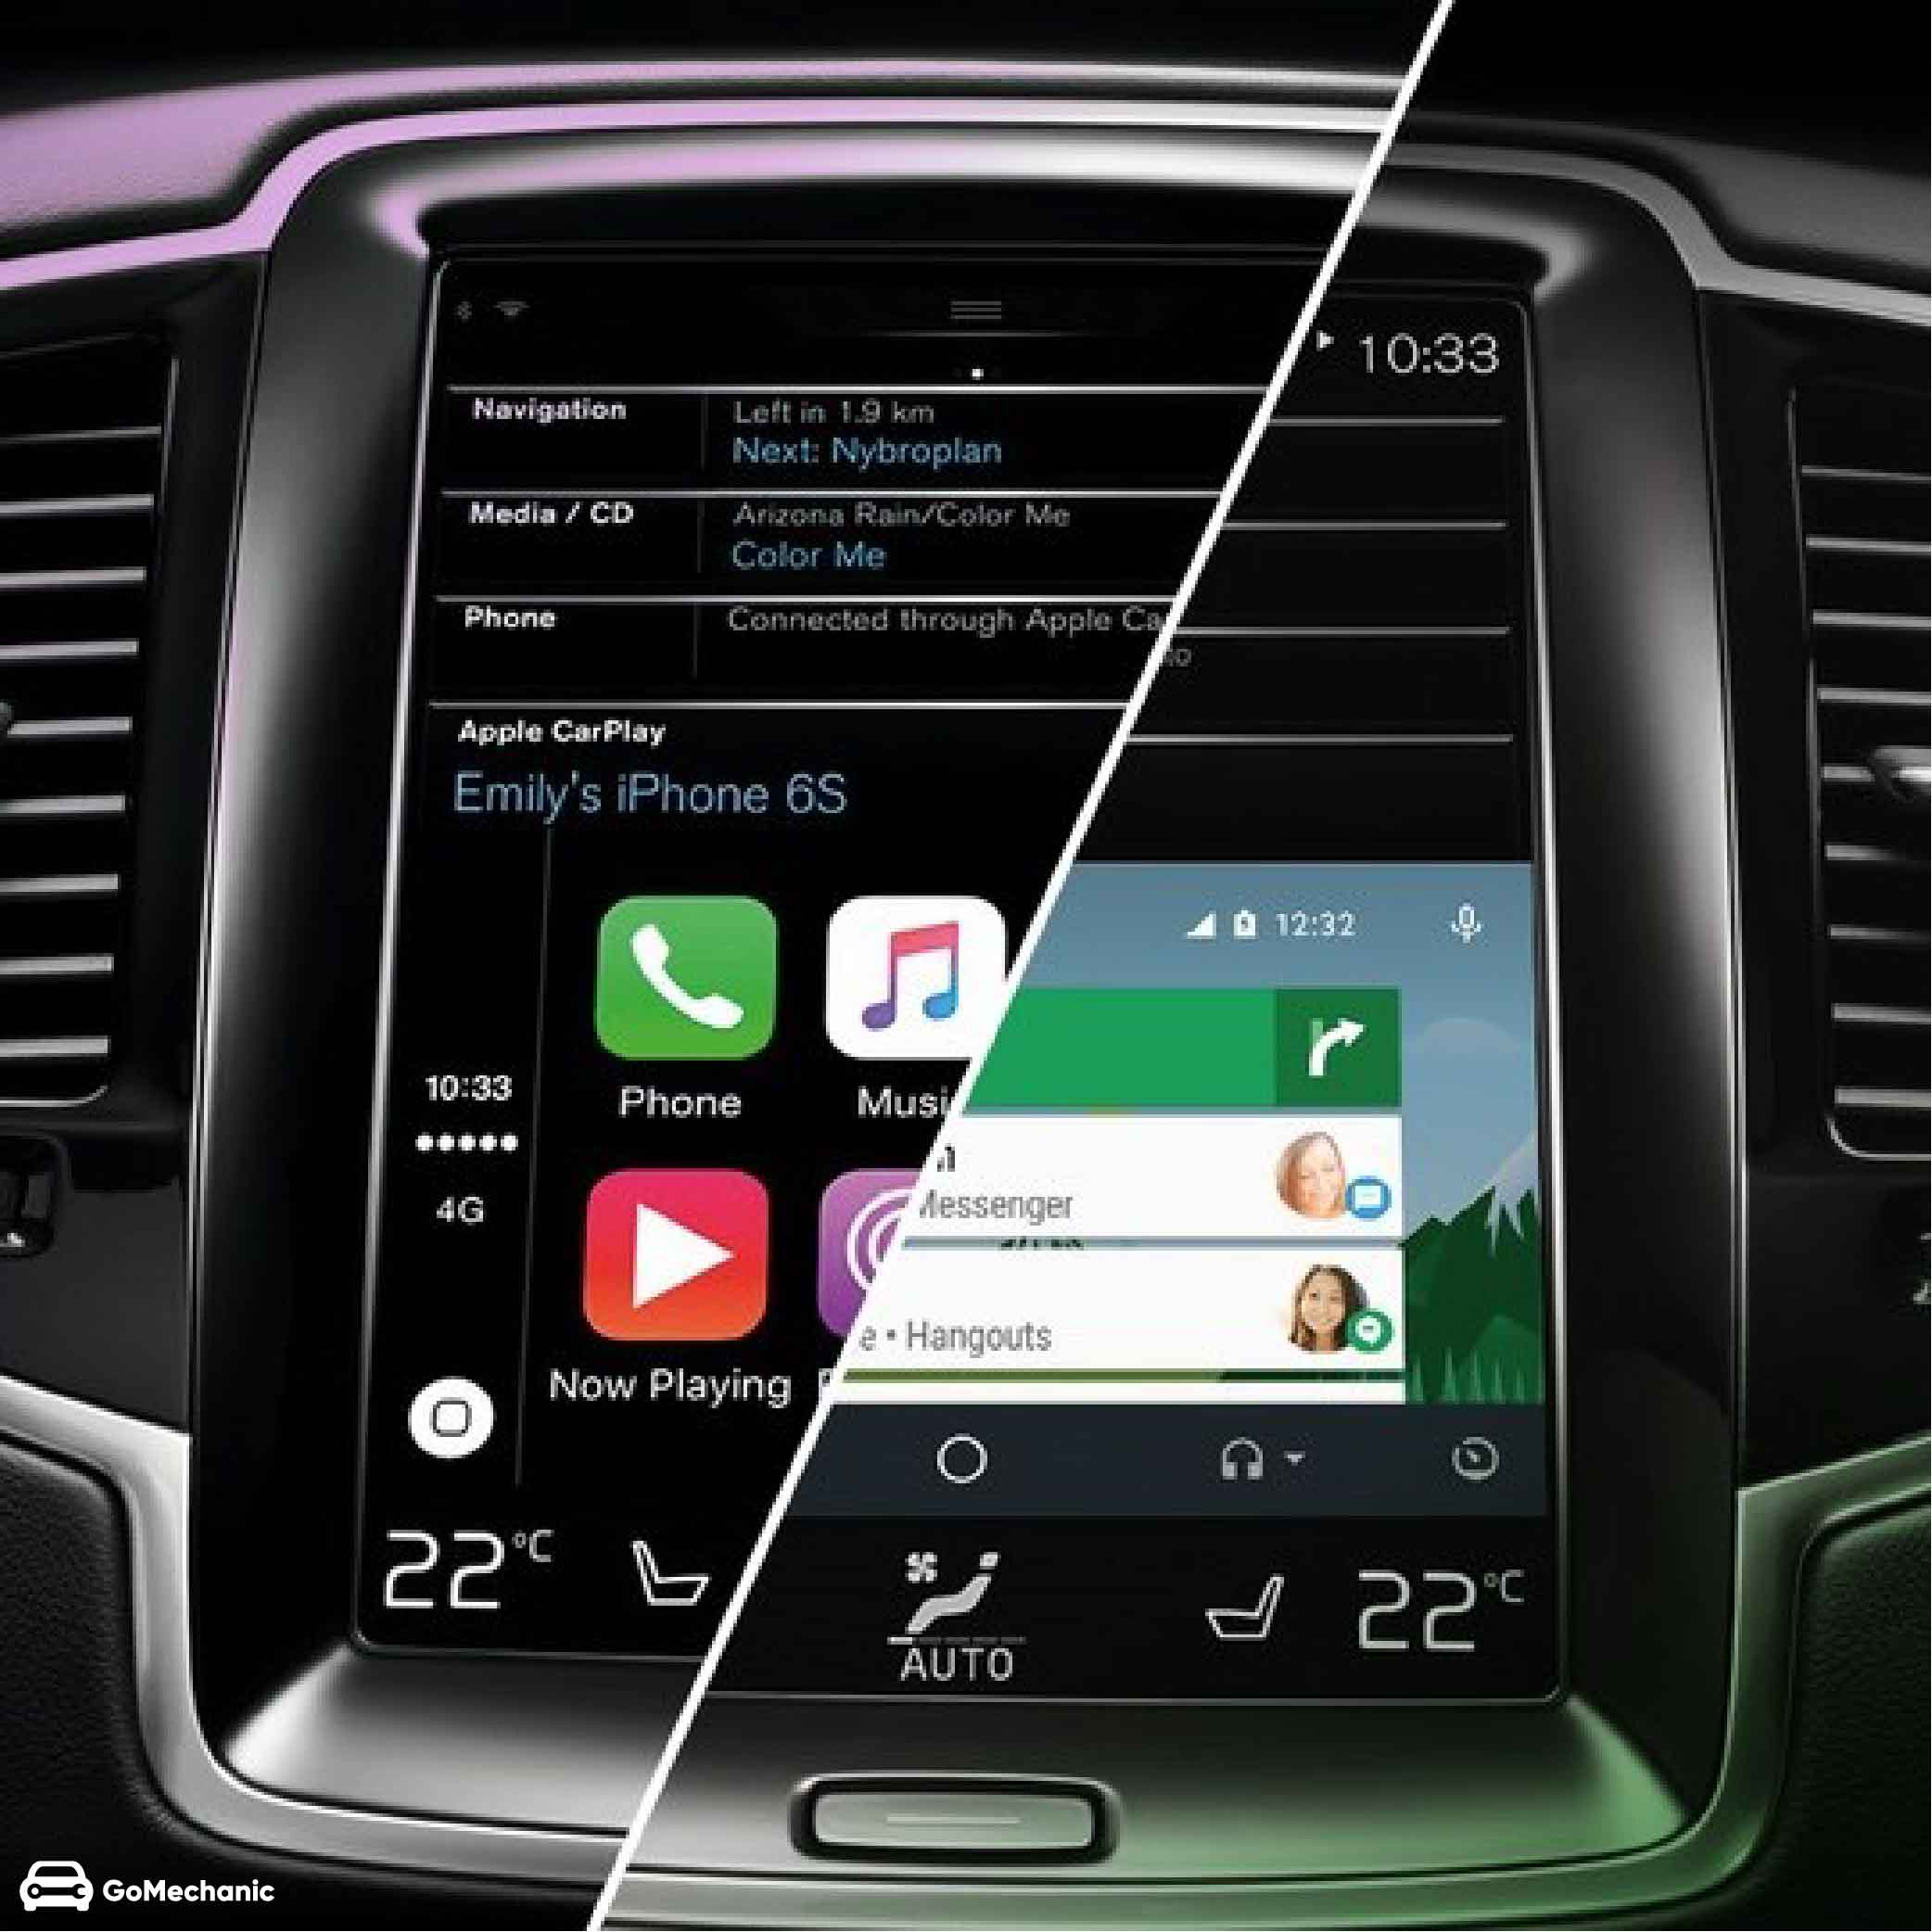 Android Auto Vs Apple CarPlay | GoMechanic